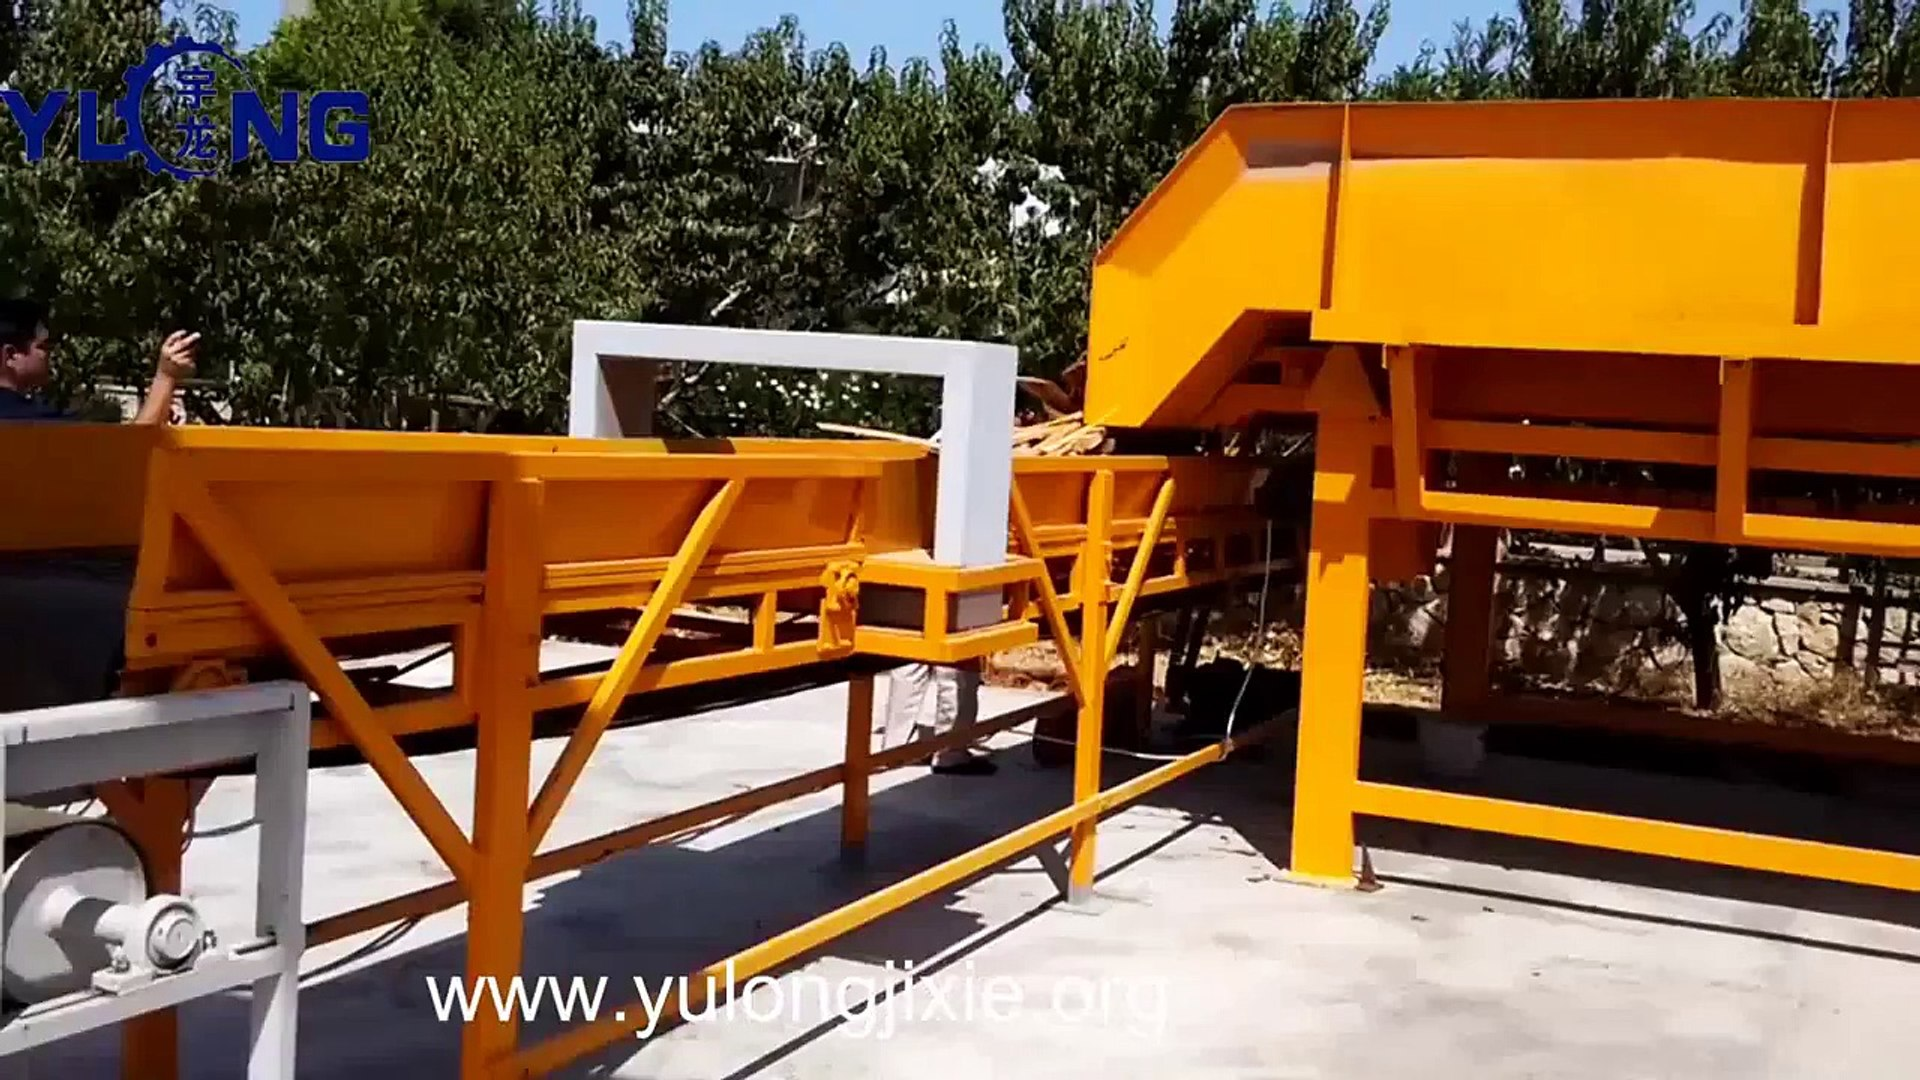 wood pallet crushing machine,waste building board crusher,large capacity hammer mill